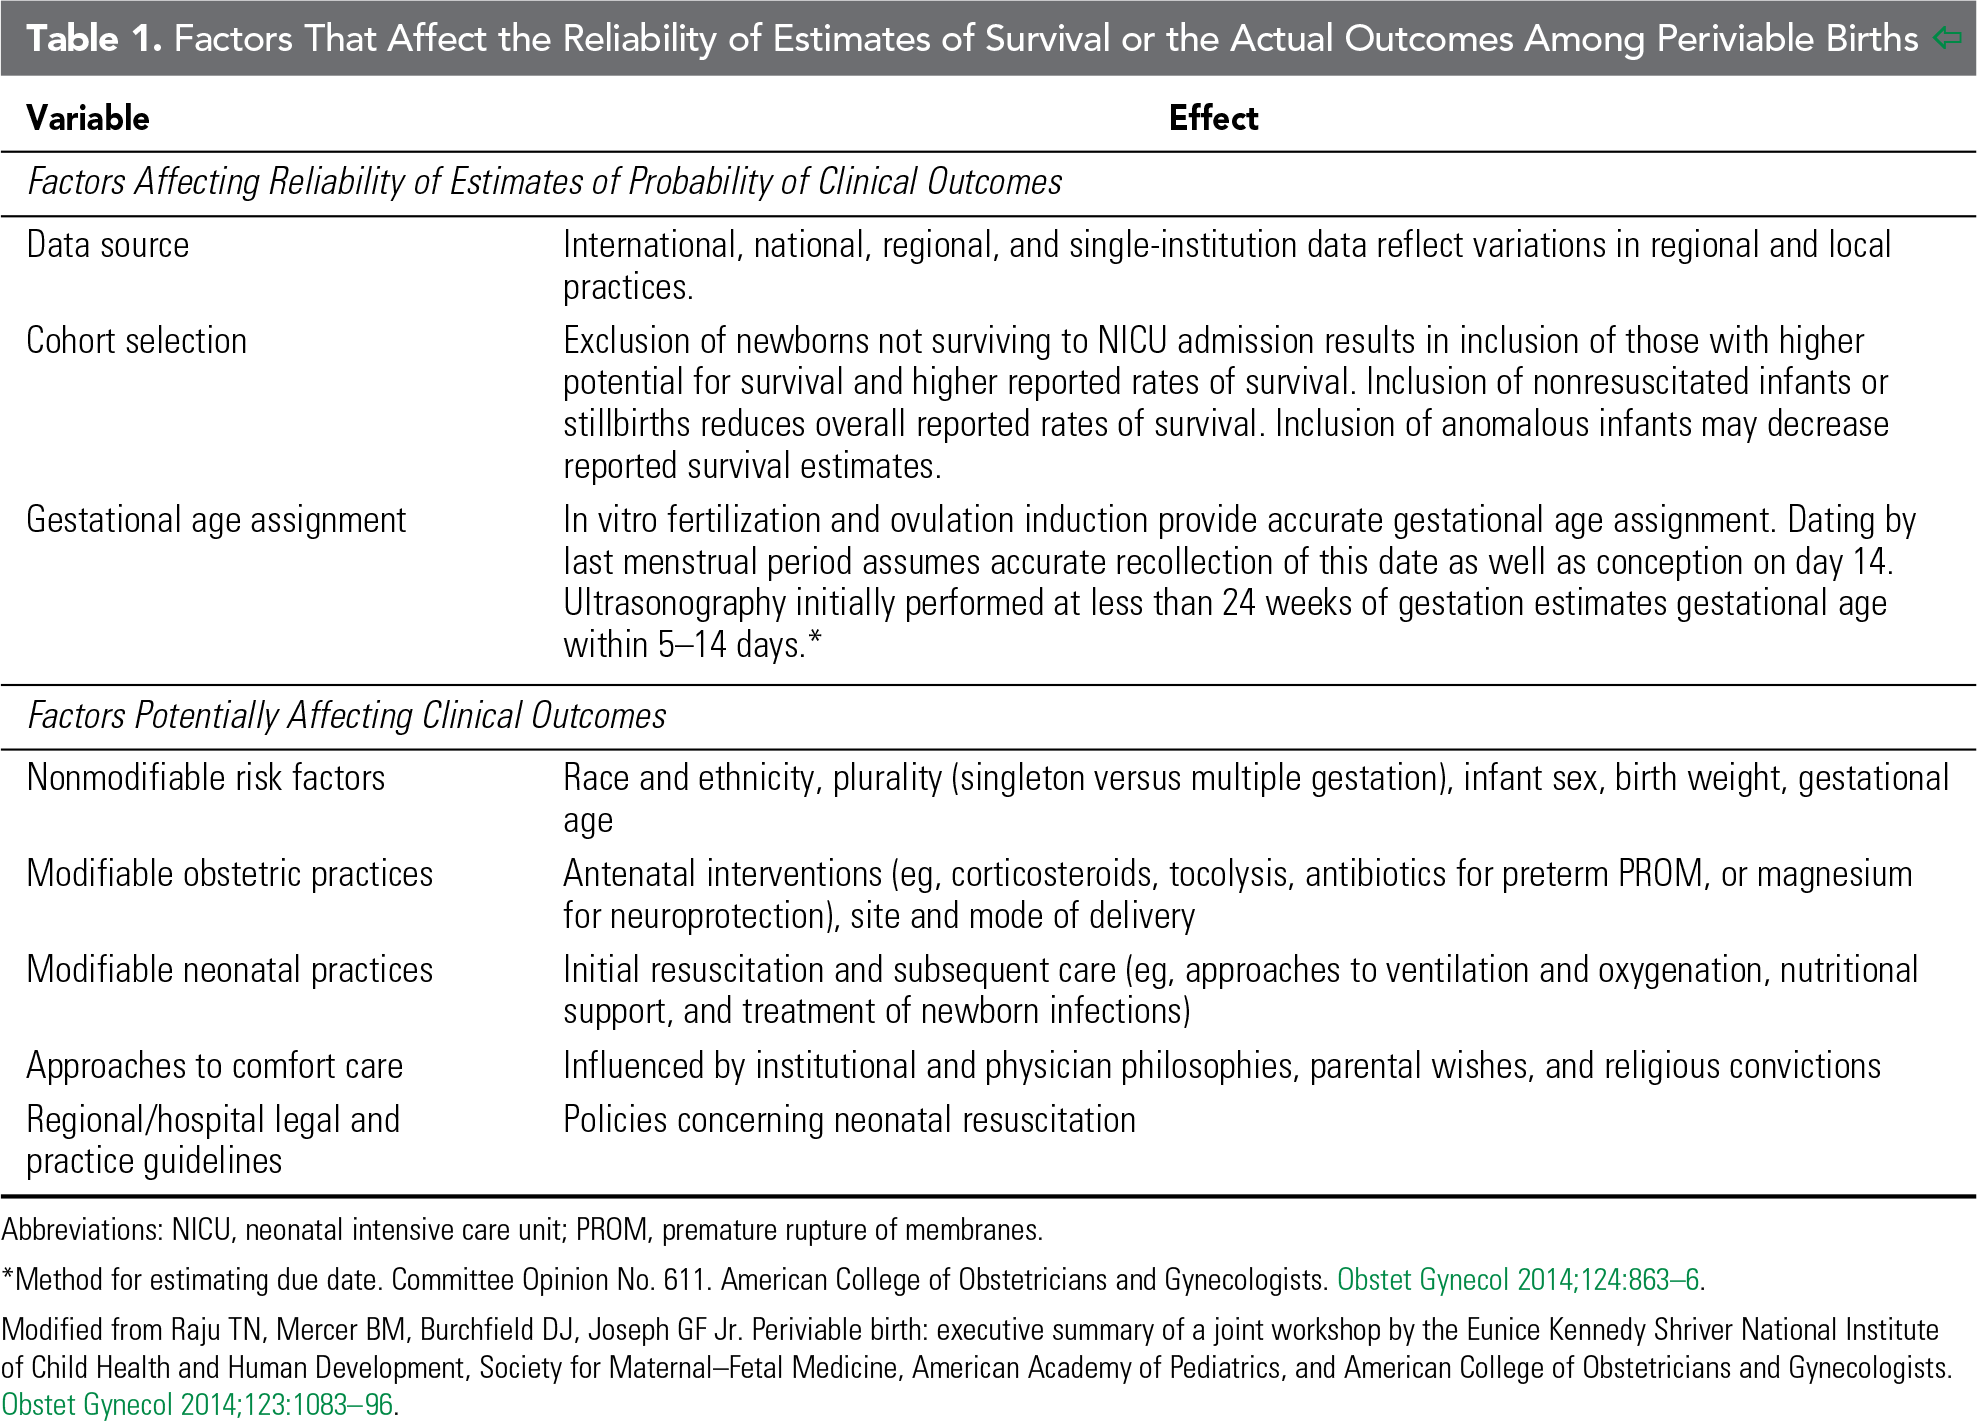 Table 1. Factors That Affect The Reliability of Estimates of Survival or the Actual Outcomes Among Periviable Births.